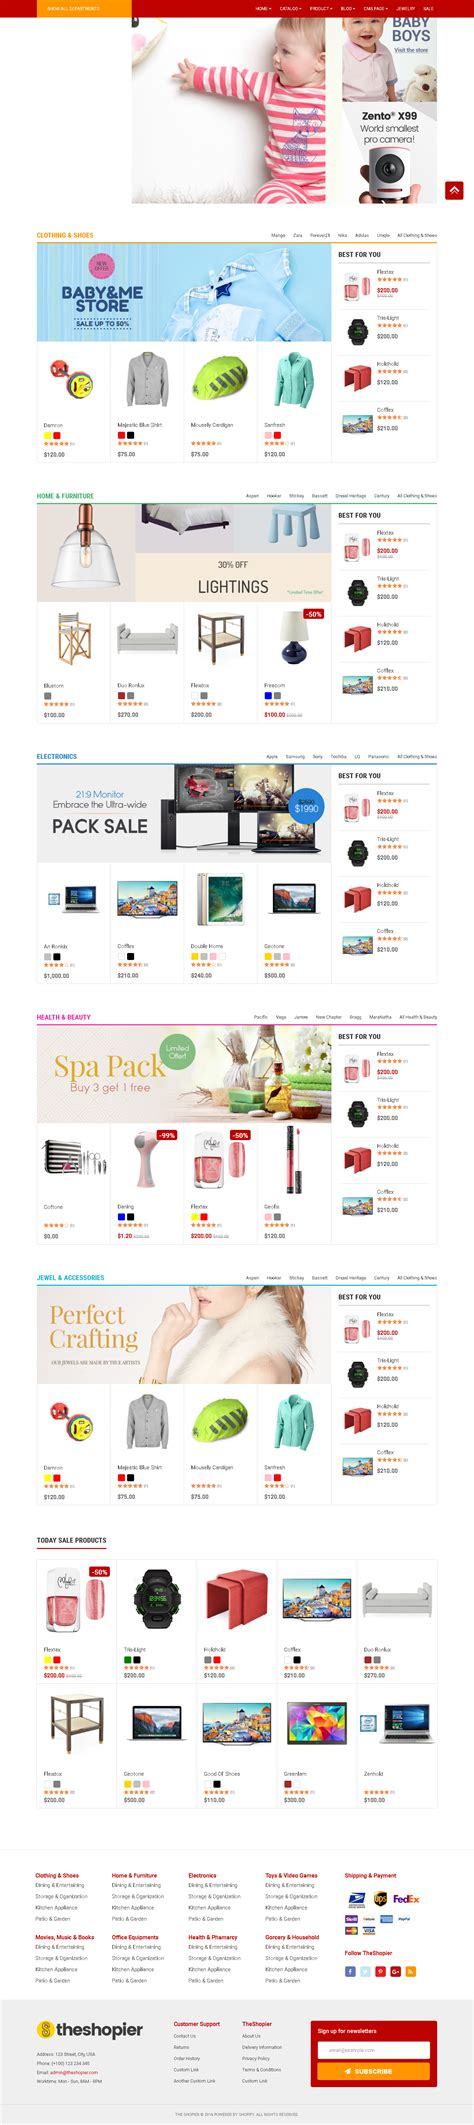 ishop multi purpose shopify theme junothemes top 5 shopify themes for book store